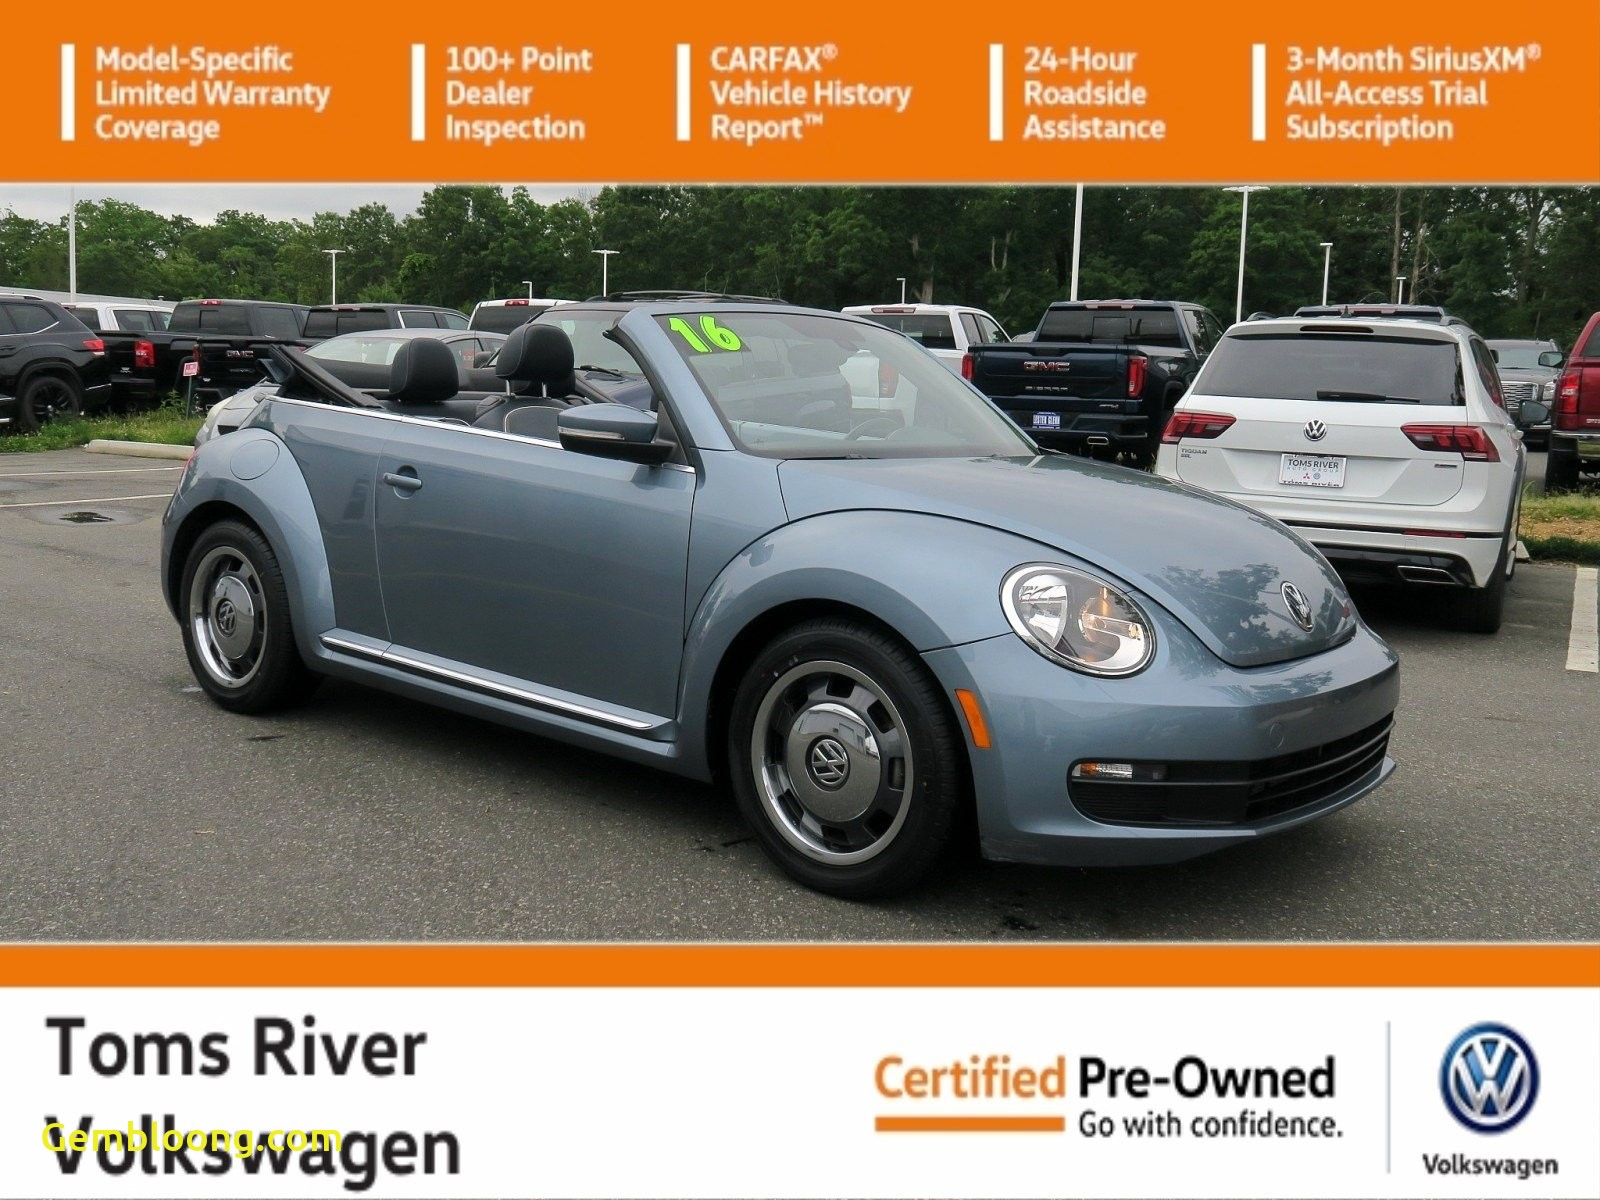 Car Reports Other Than Carfax Inspirational Certified Pre Owned 2016 Volkswagen Beetle Convertible 1 8t Denim Fwd Convertible